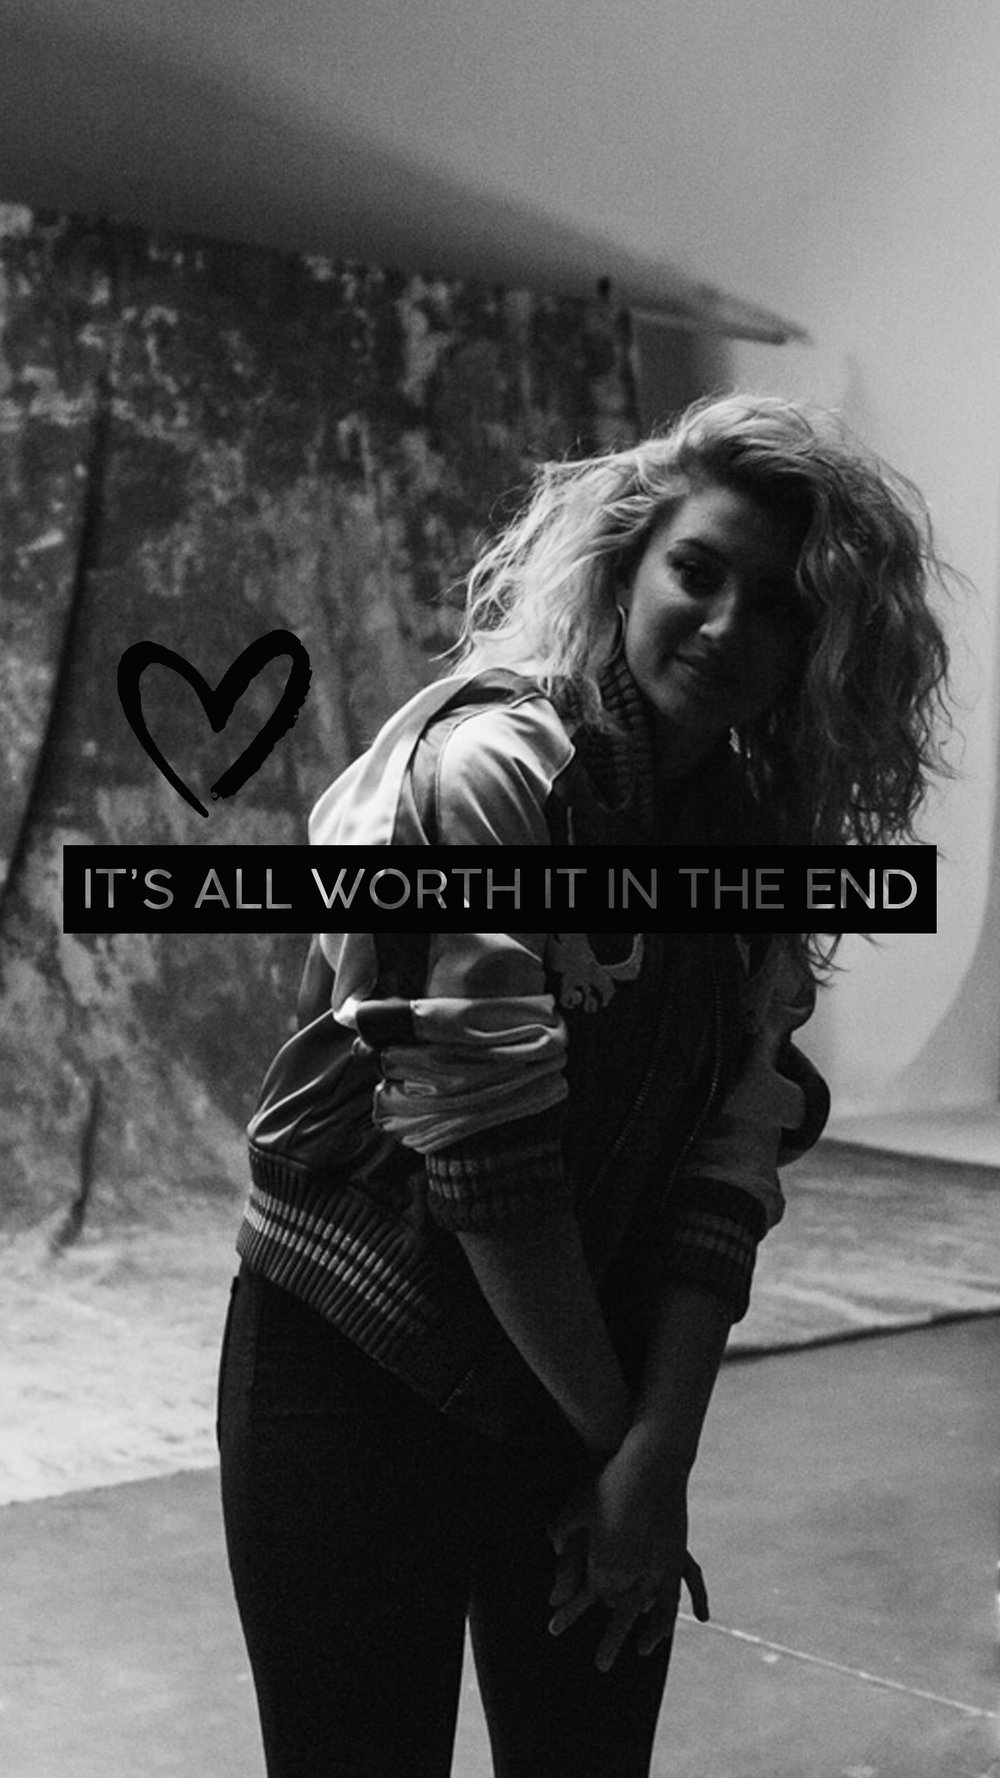 torikelly-lockscreen3.jpg